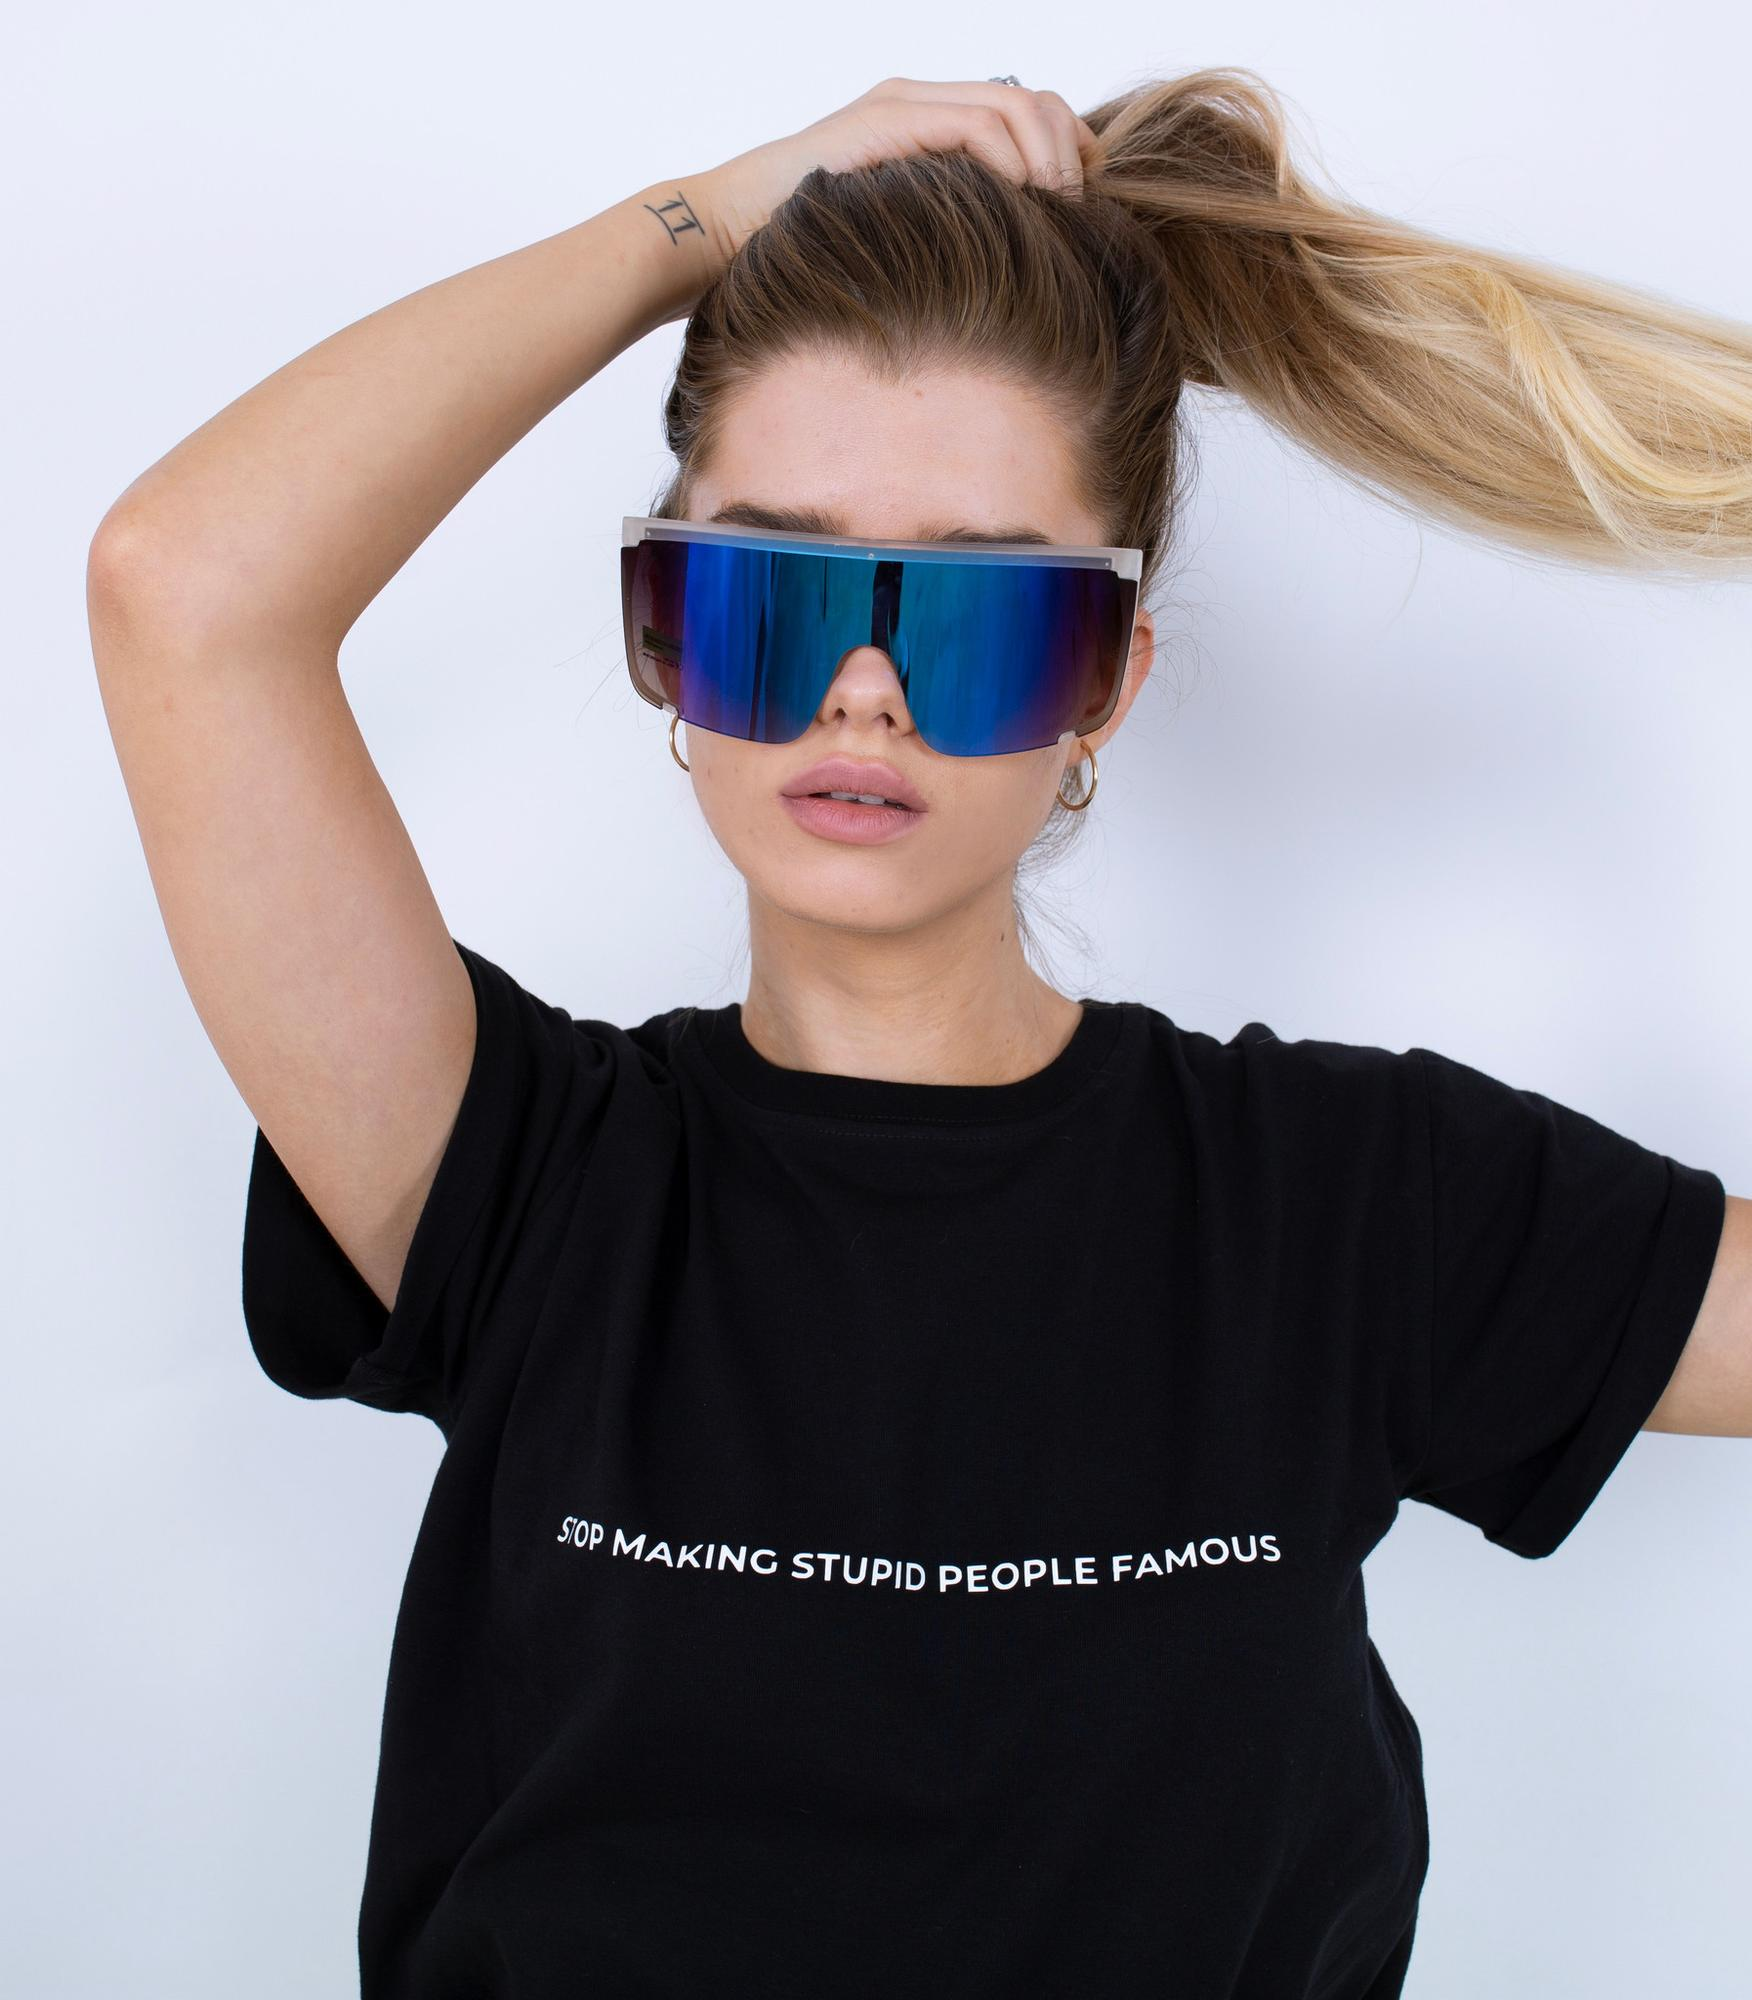 T-shirt Statement - whysoserious